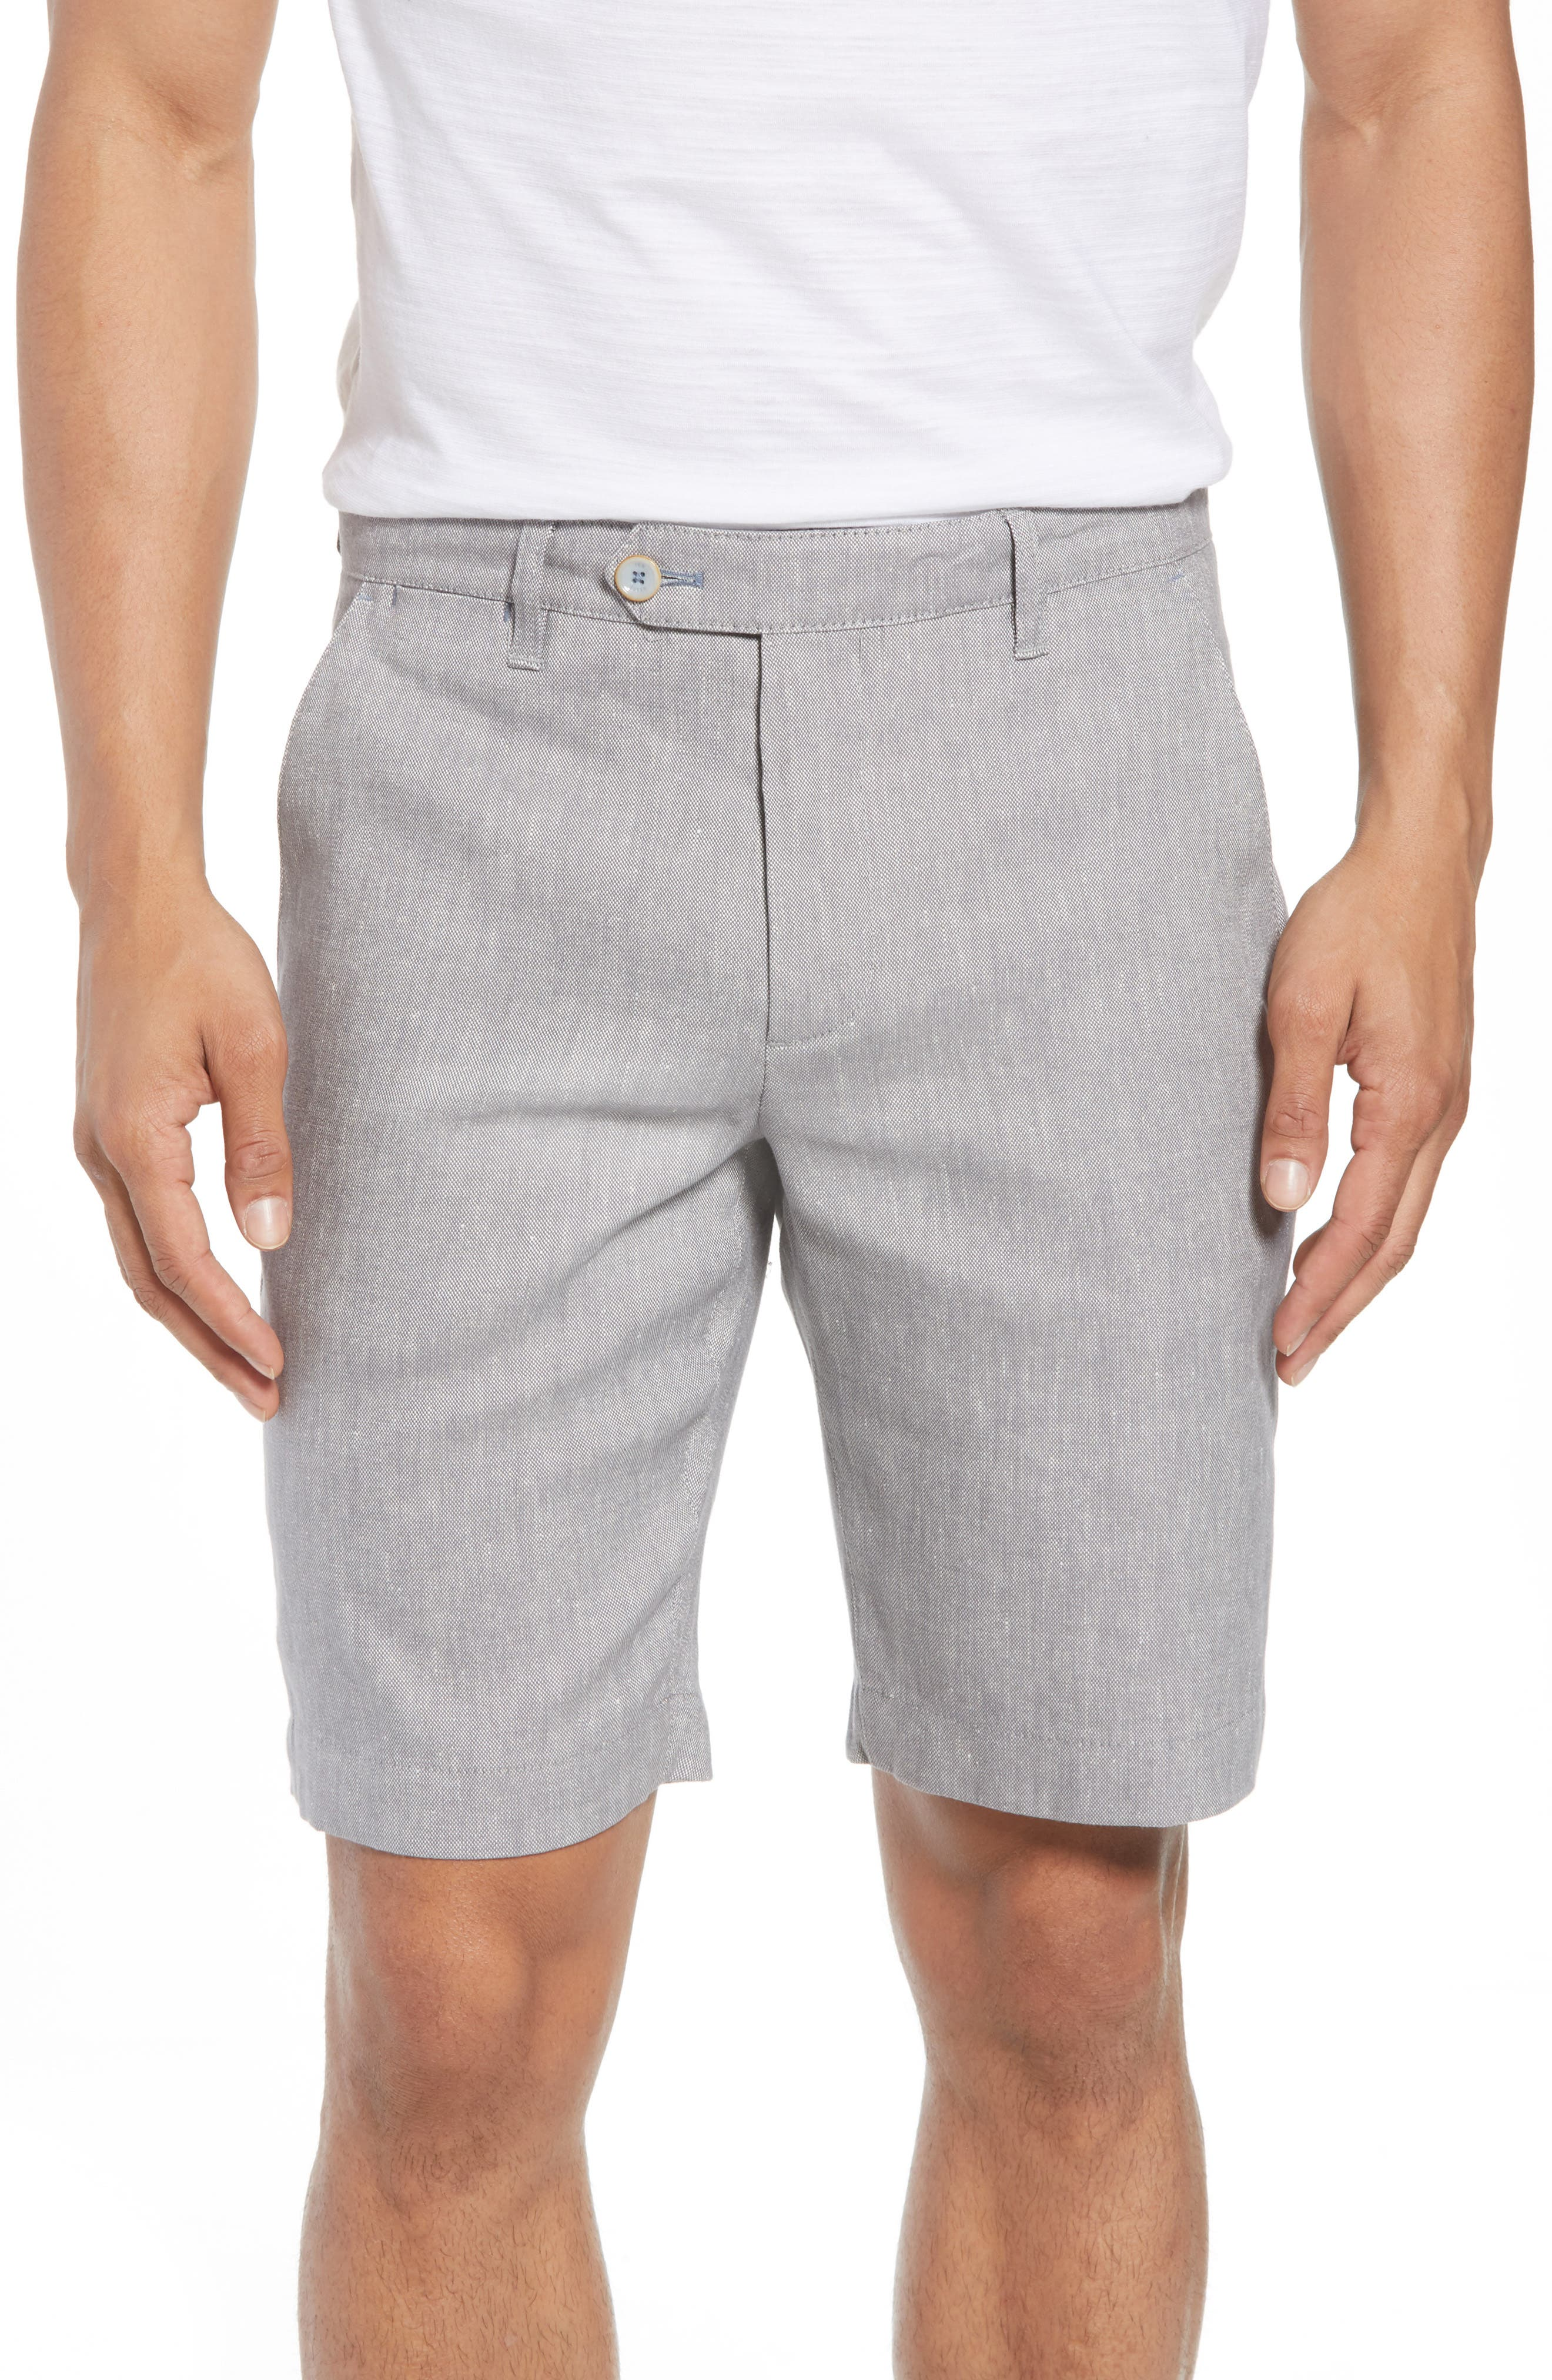 Newshow Flat Front Stretch Cotton Blend Shorts,                             Main thumbnail 1, color,                             050